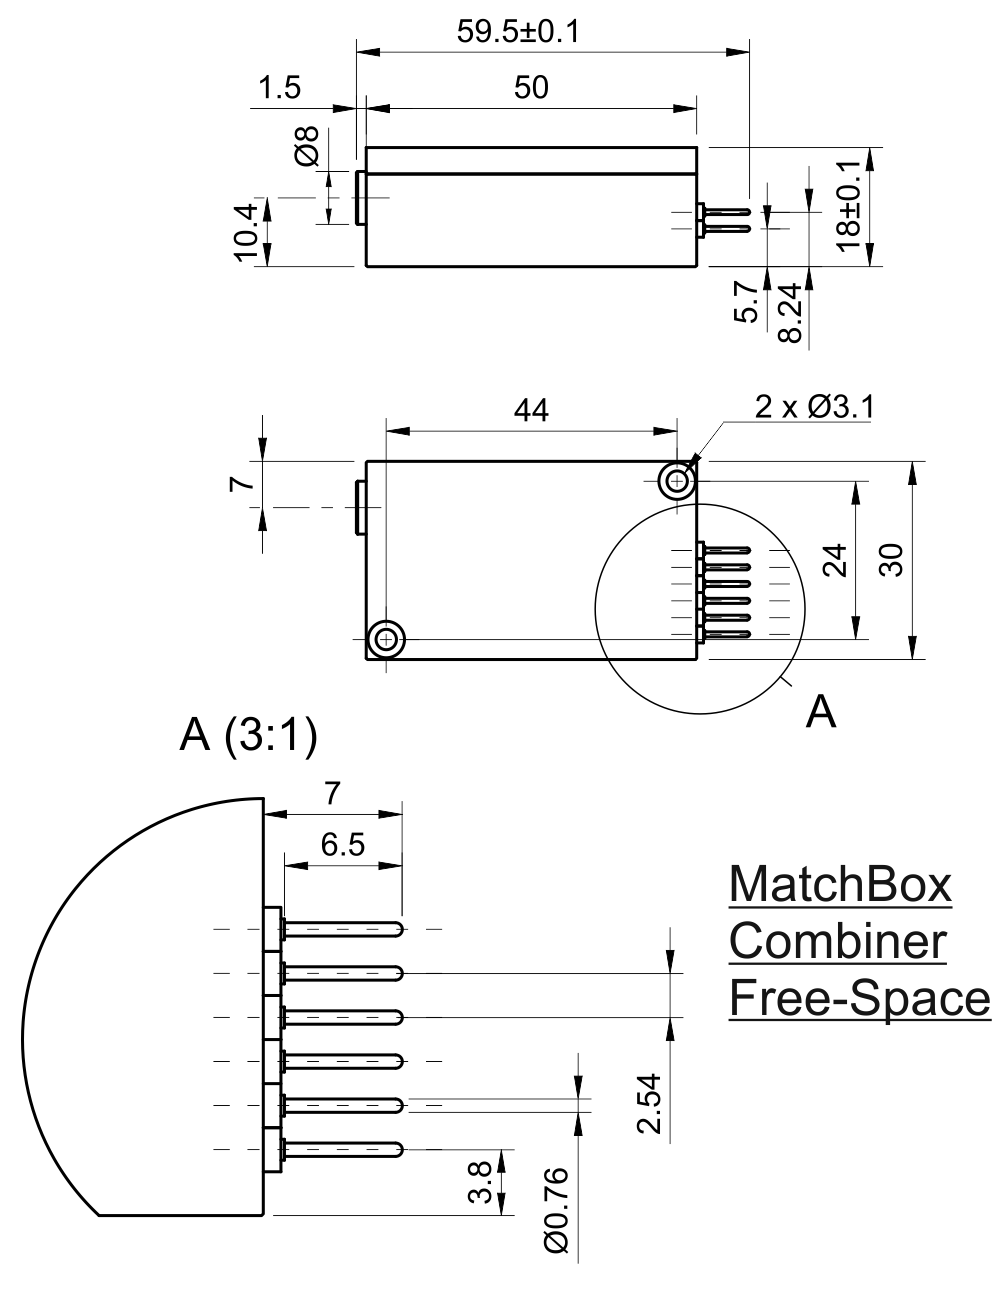 Drawing of Diode Laser Combiner; Free-space (405 nm, 488 nm, 520 nm, 638 nm)